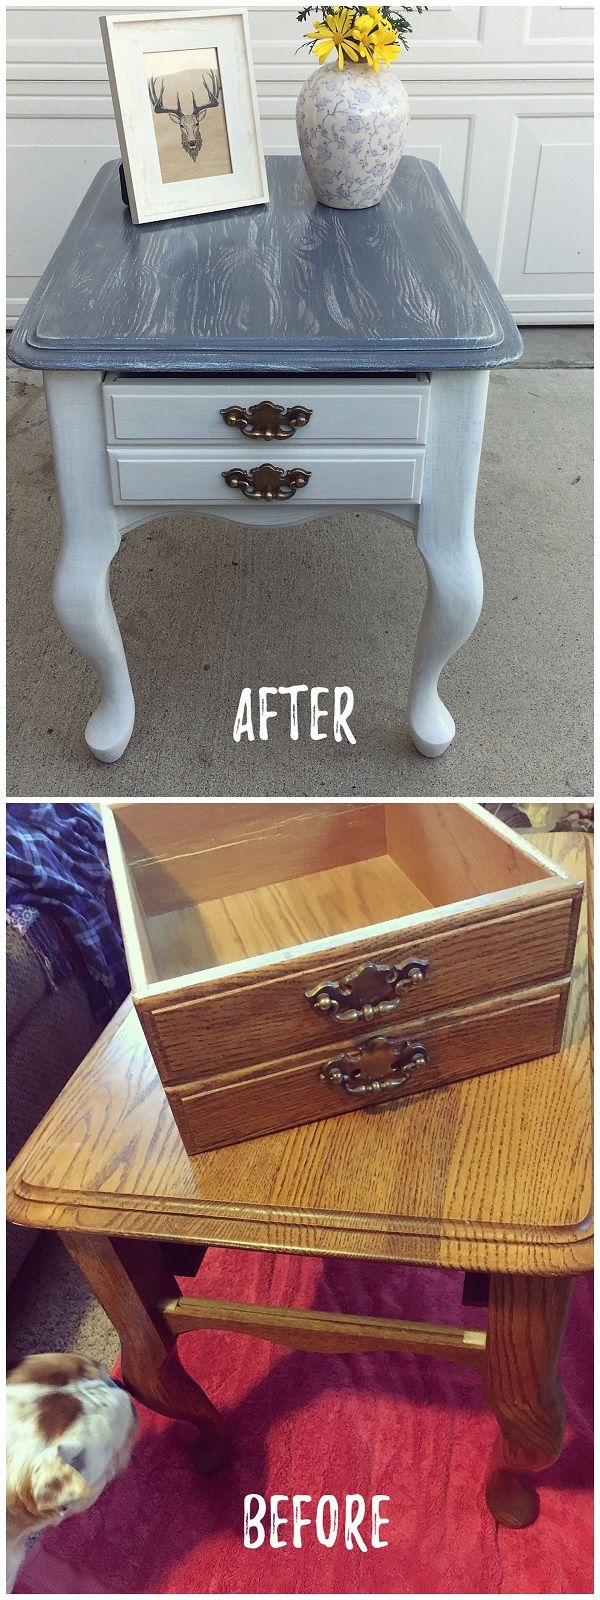 Check out this #DIY #FleaMarket flip of a nightstand #HomeDecorIdeas #RusticDecor @istandarddesign